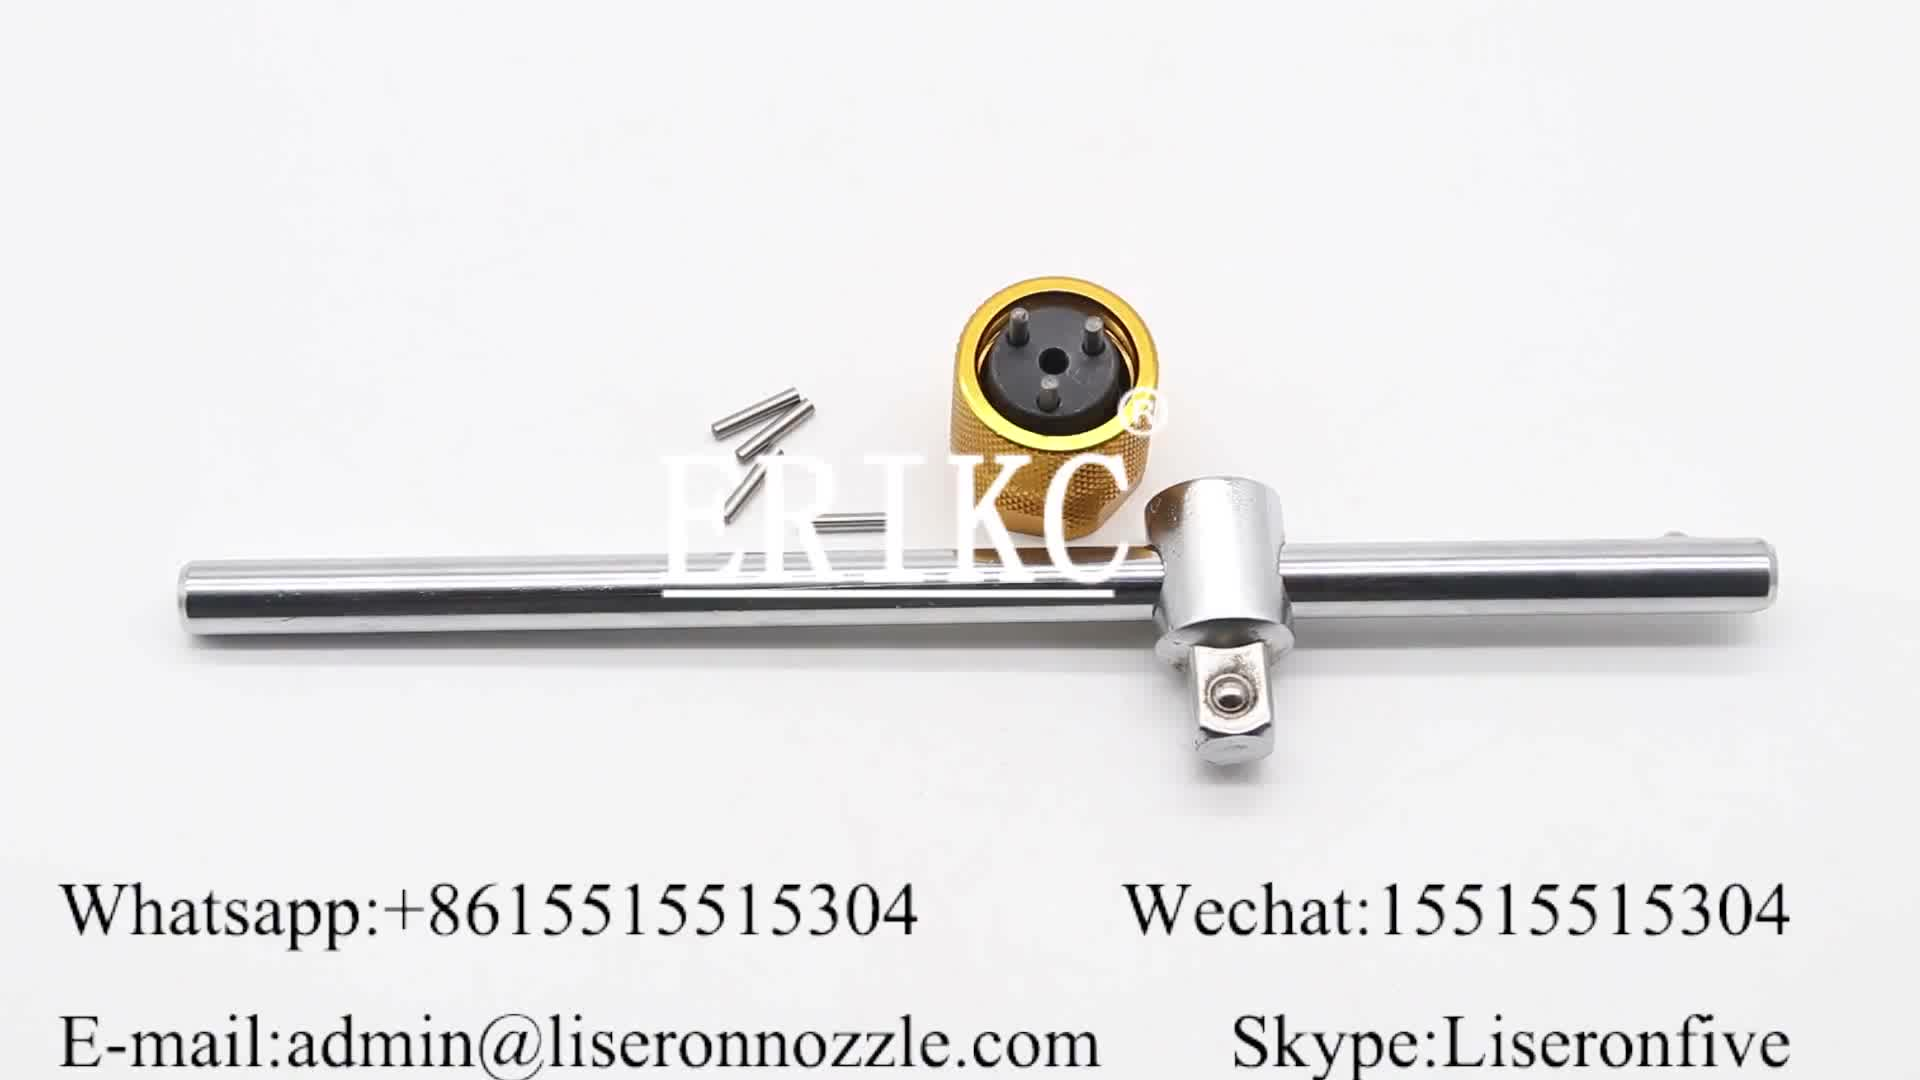 E1024010 Denso Three-Jaw Spanners for injector,ERIKC Remove Denso Valve , Disassemble Denso Injector Valve Orifice Plate